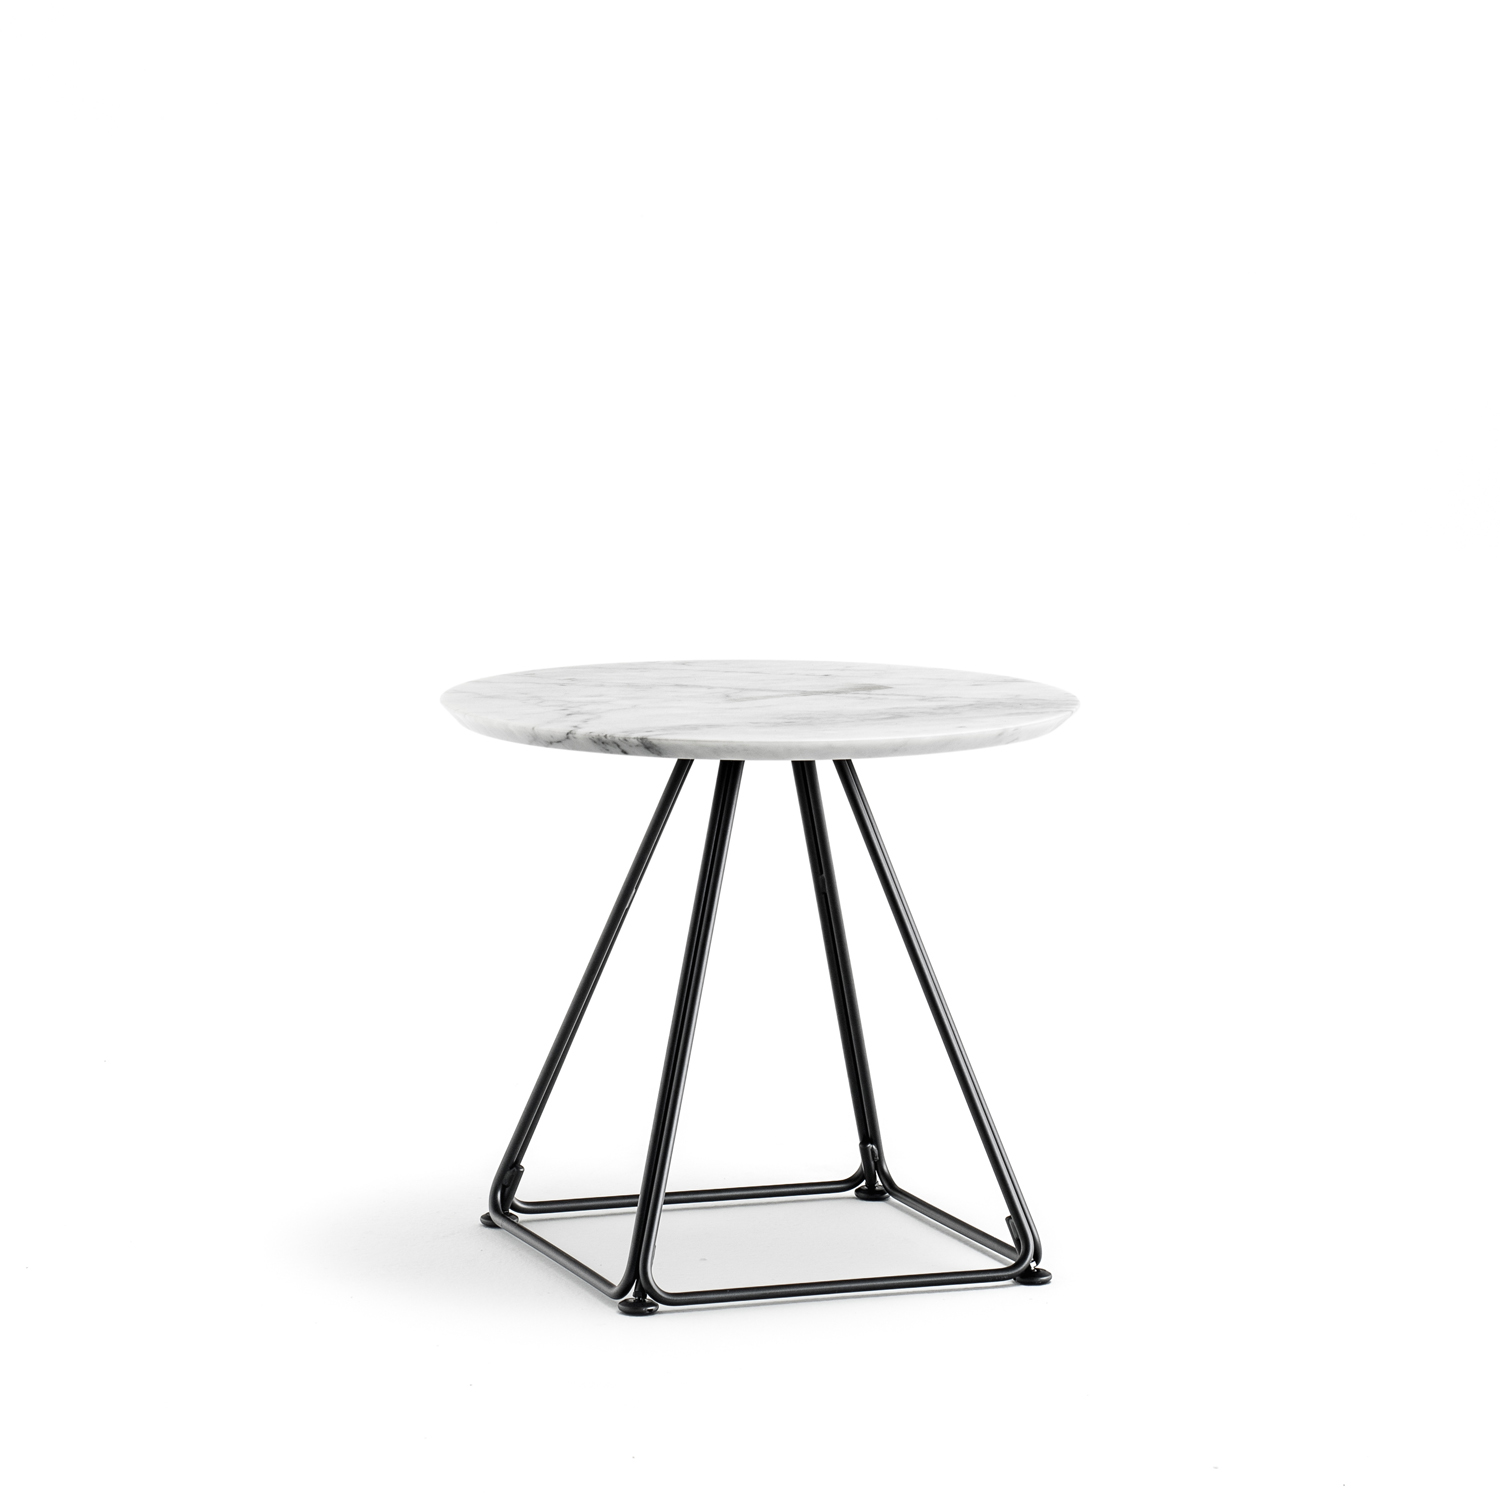 pedrali-lunar-table-base-coffee